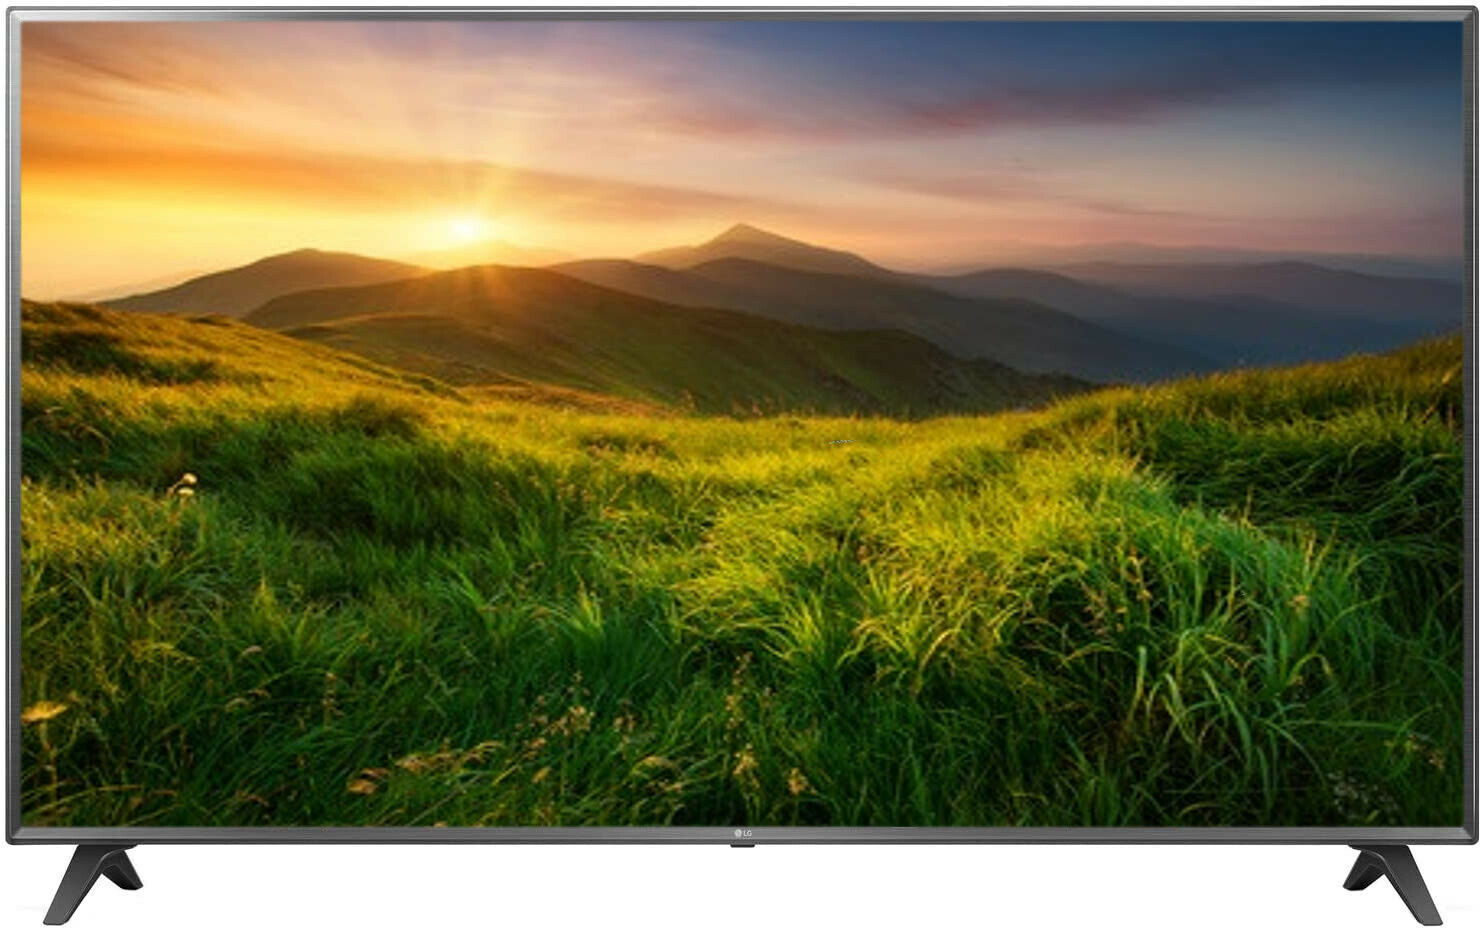 LG 75UM6970PUB 75 Inch Class HDR 4K UHD Smart IPS LED TV. Buy it now for 845.49